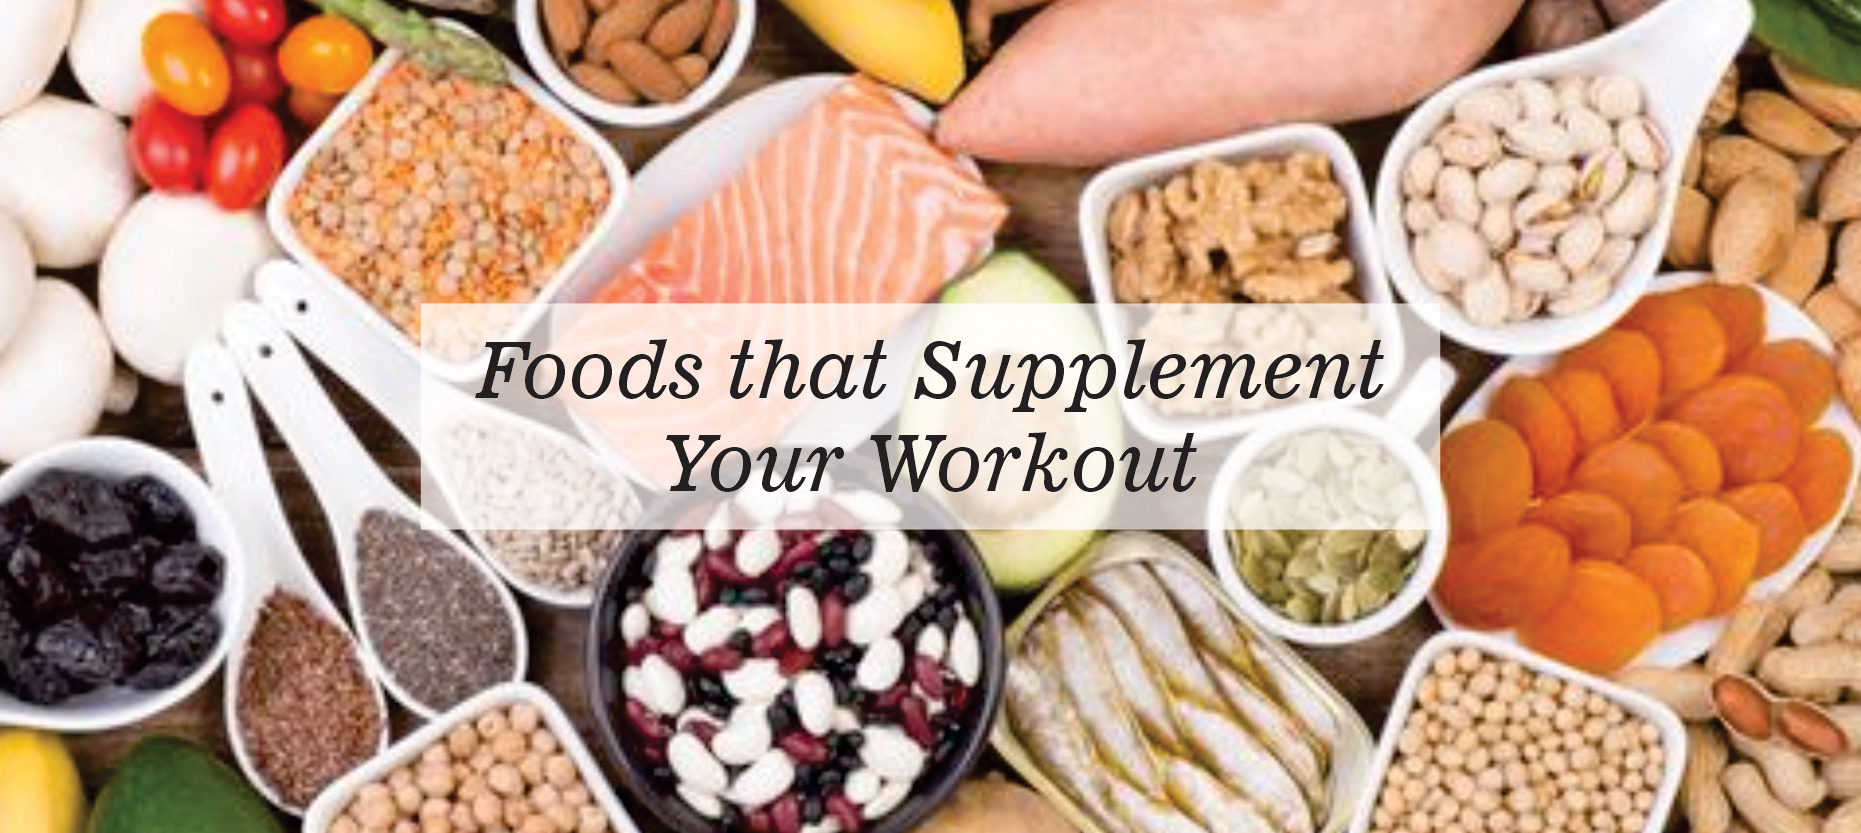 Foods that Supplement Your Workout